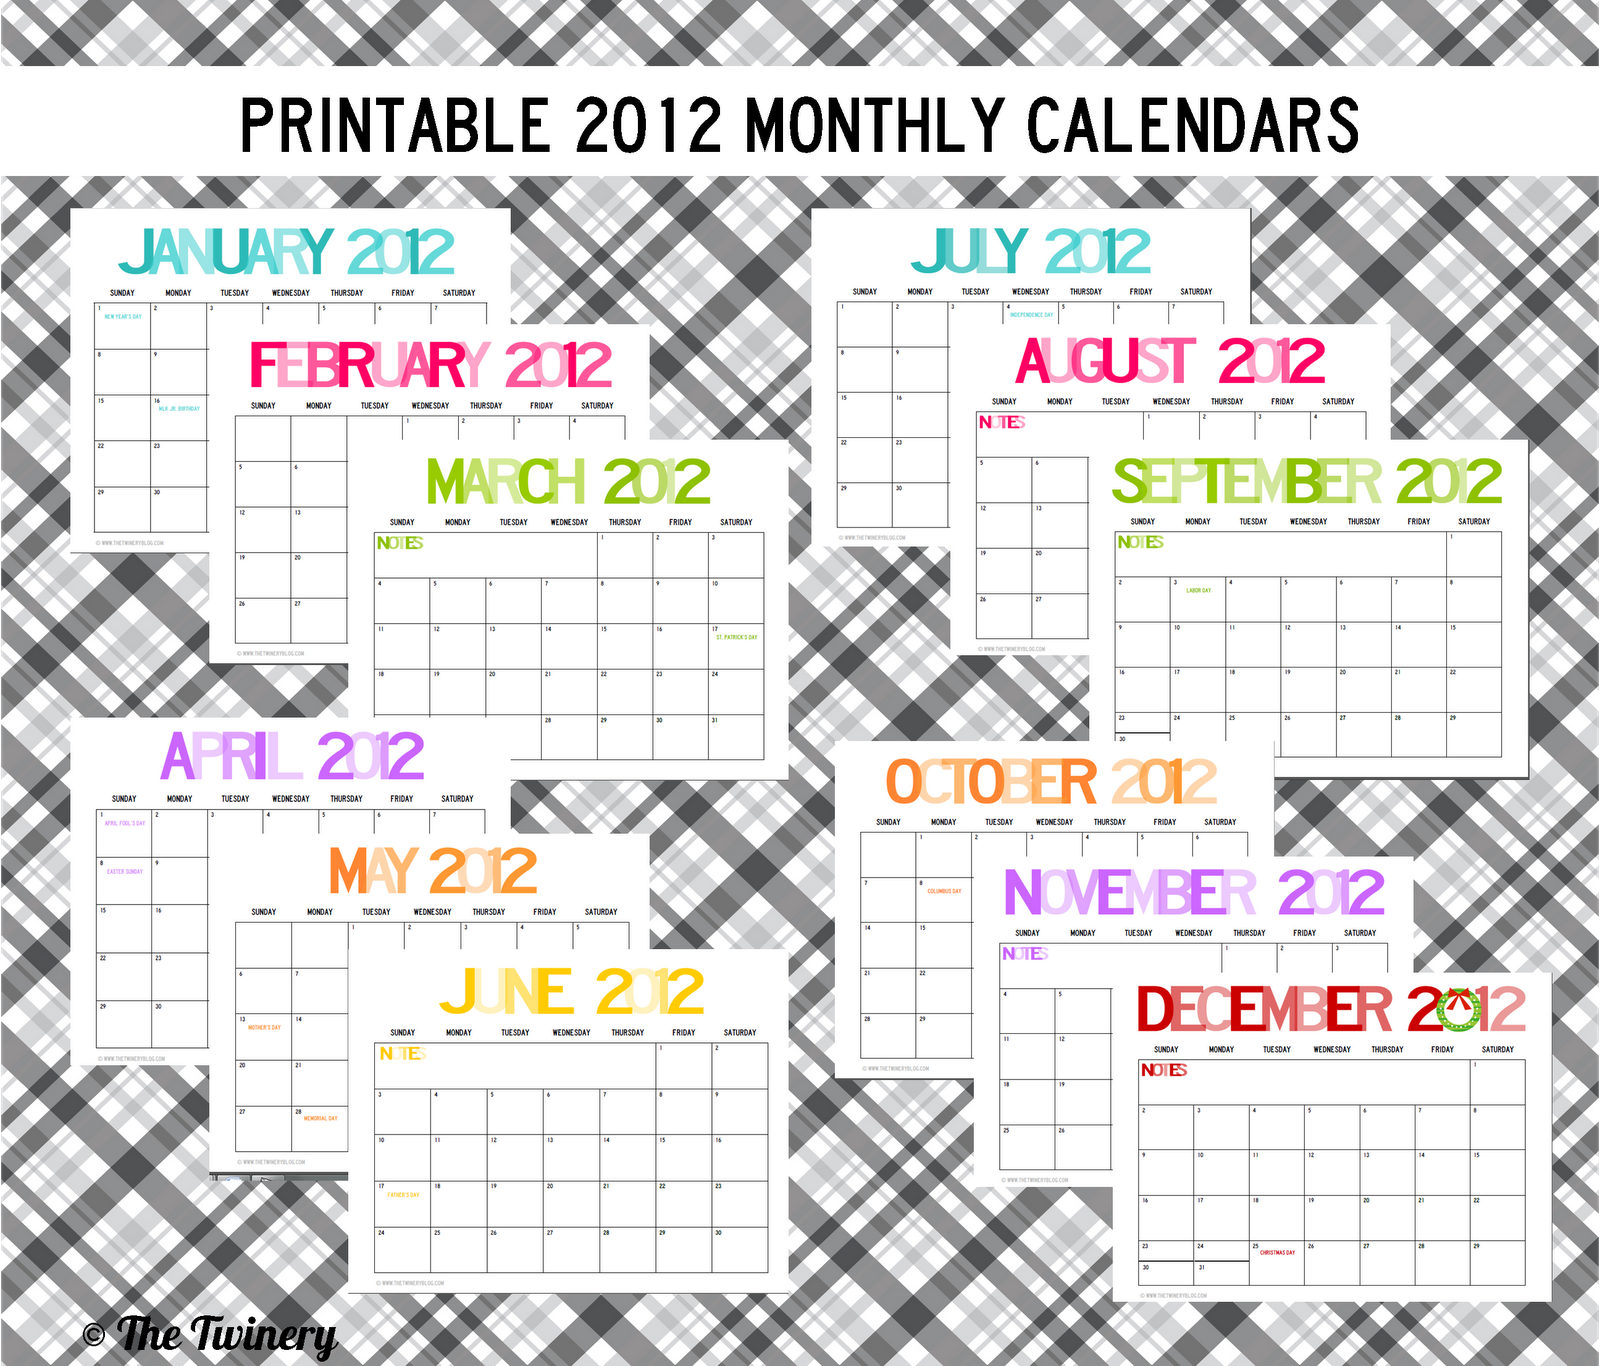 YOU CAN DOWNLOAD THE FULL 2012 CALENDAR BELOW —